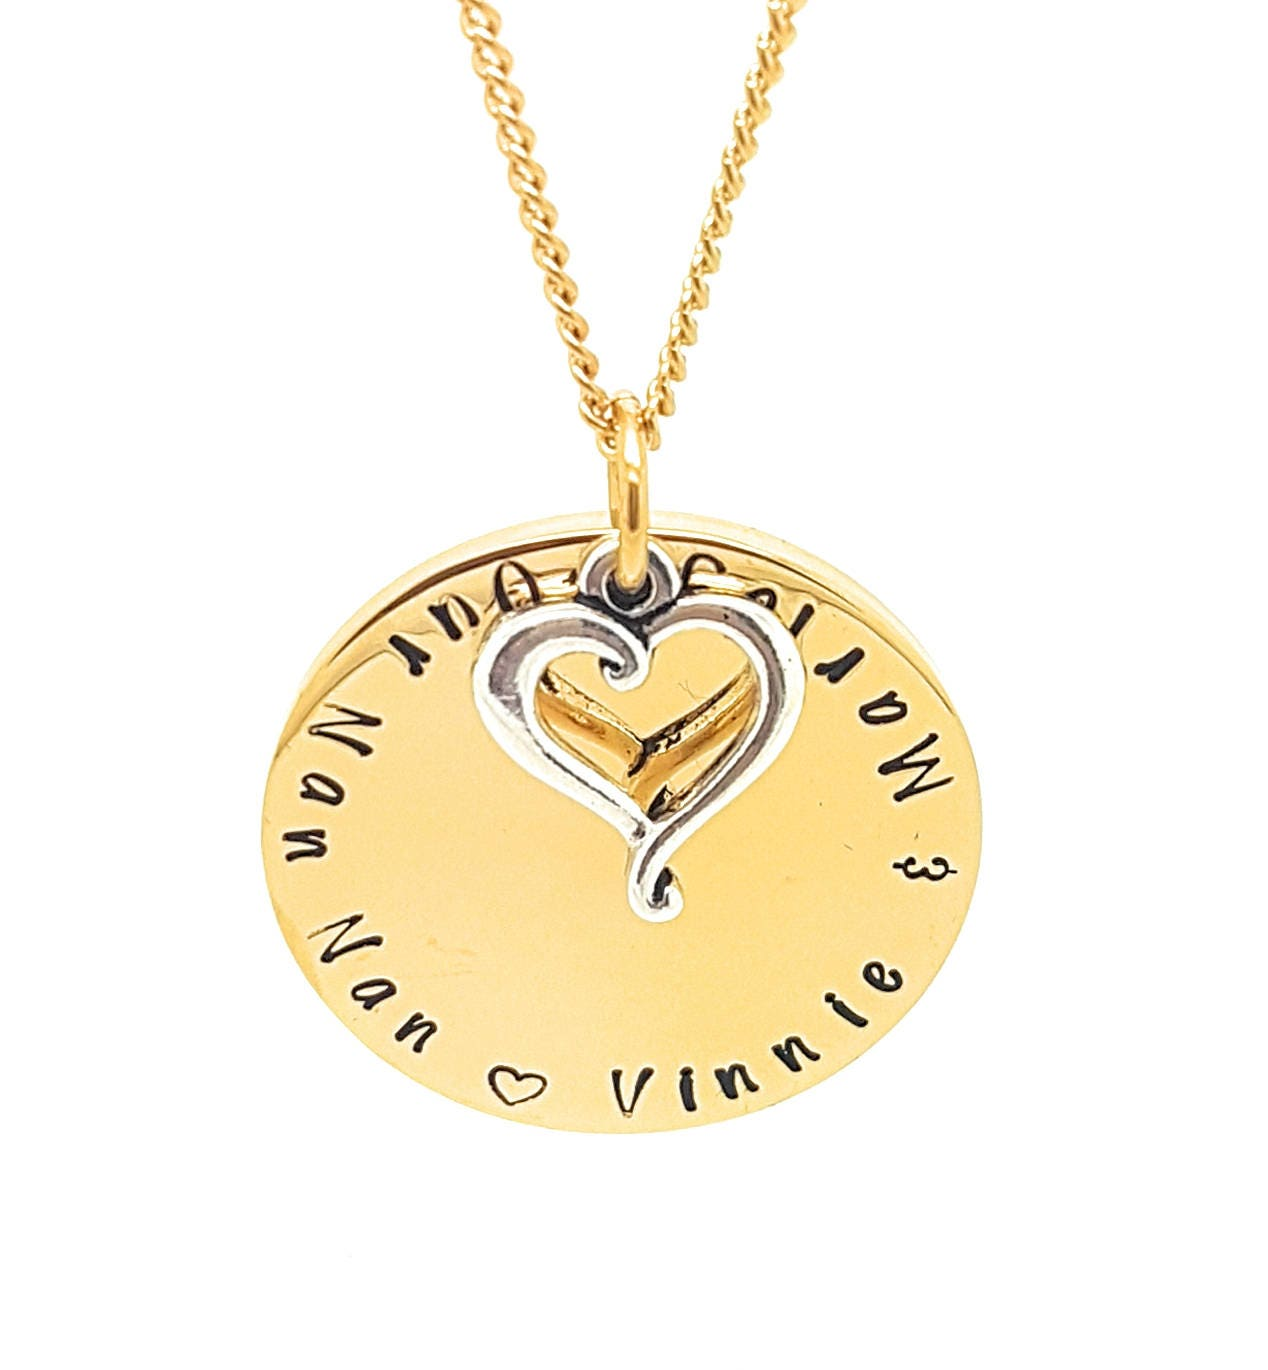 Gold and silver family names love heart pendant personalised gold and silver family names love heart pendant personalised jewellery hand stamped name necklaces gold family name pendants gift aloadofball Gallery